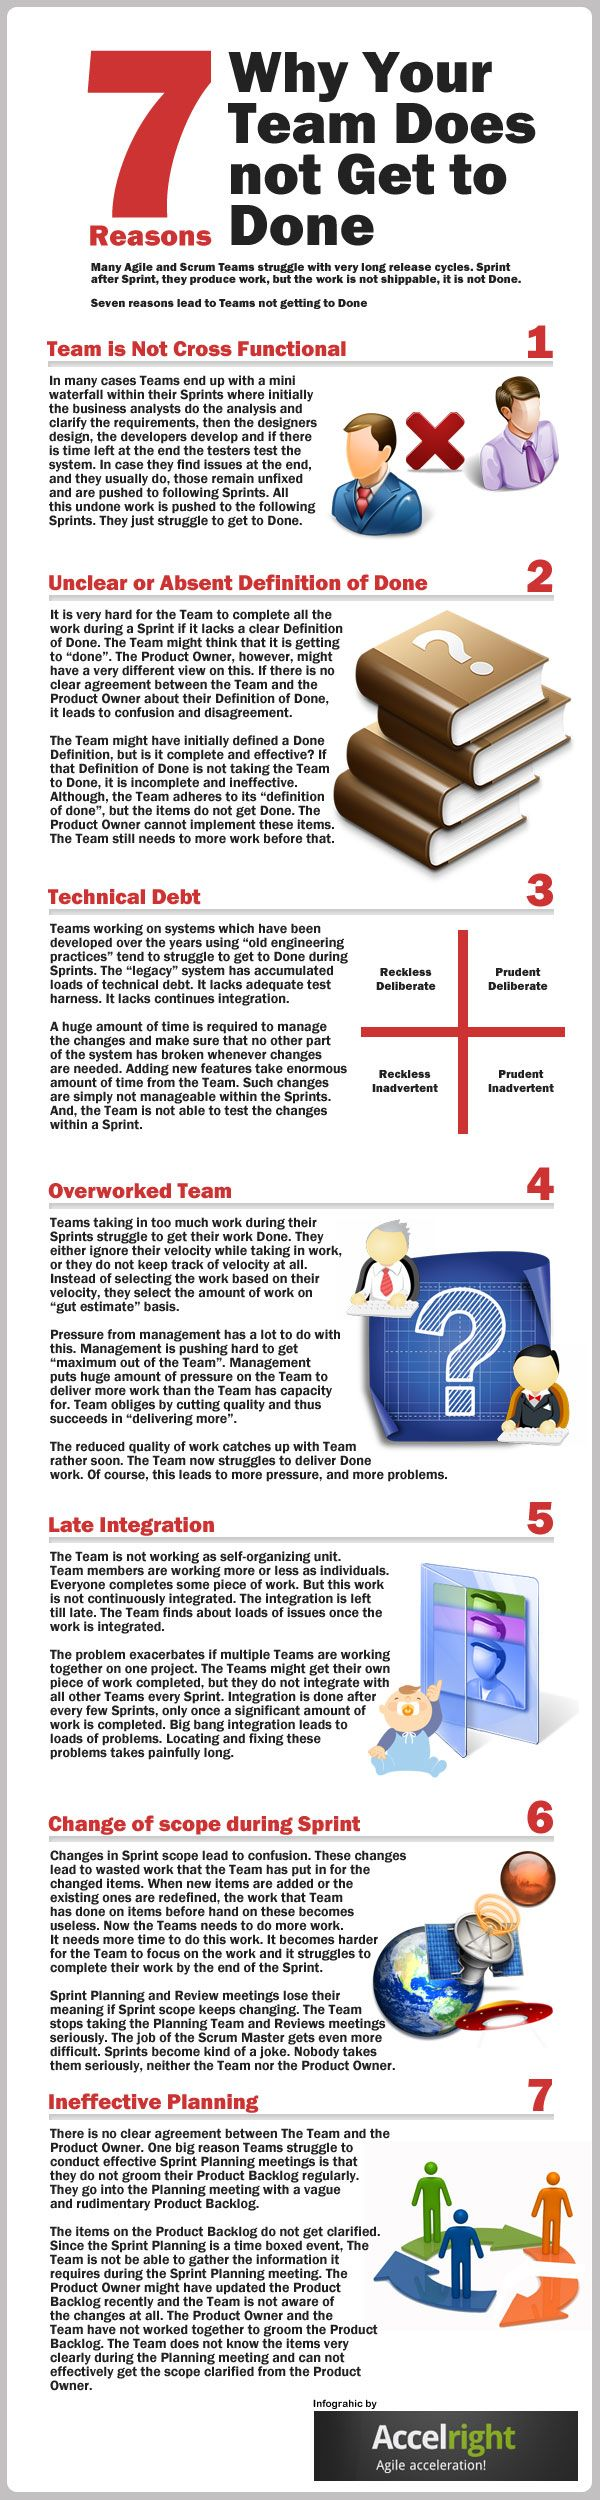 7 reasons why your team does not get to done.